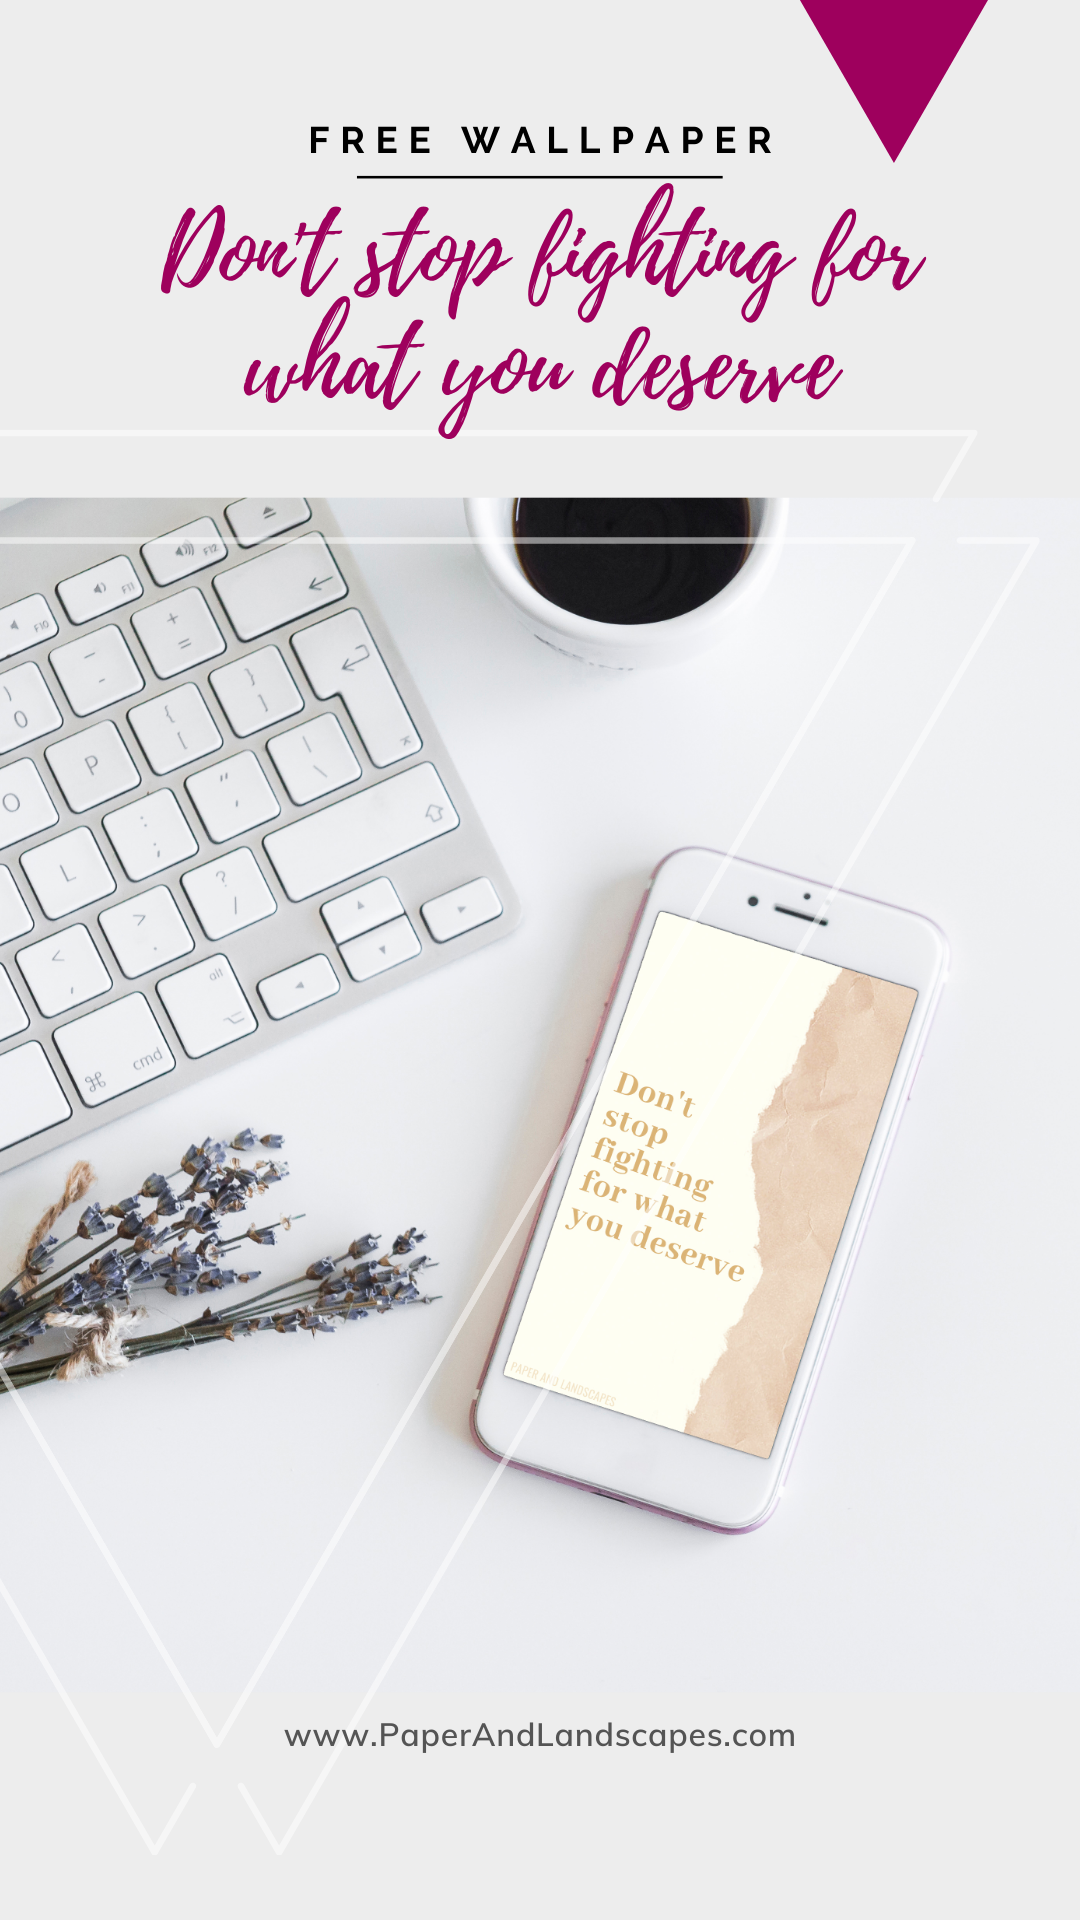 The free wallpaper featured today is a reminder to keep going, keep fighting, keep moving towards your goals. Never stop fighting for the things you know you deserve. ❤  #paperandlandscapes #blog #lifestyleblog #craftblog #diyblog  #freewallpaper #freebie #freedownload #motivation #inspiration #dontstopfighting